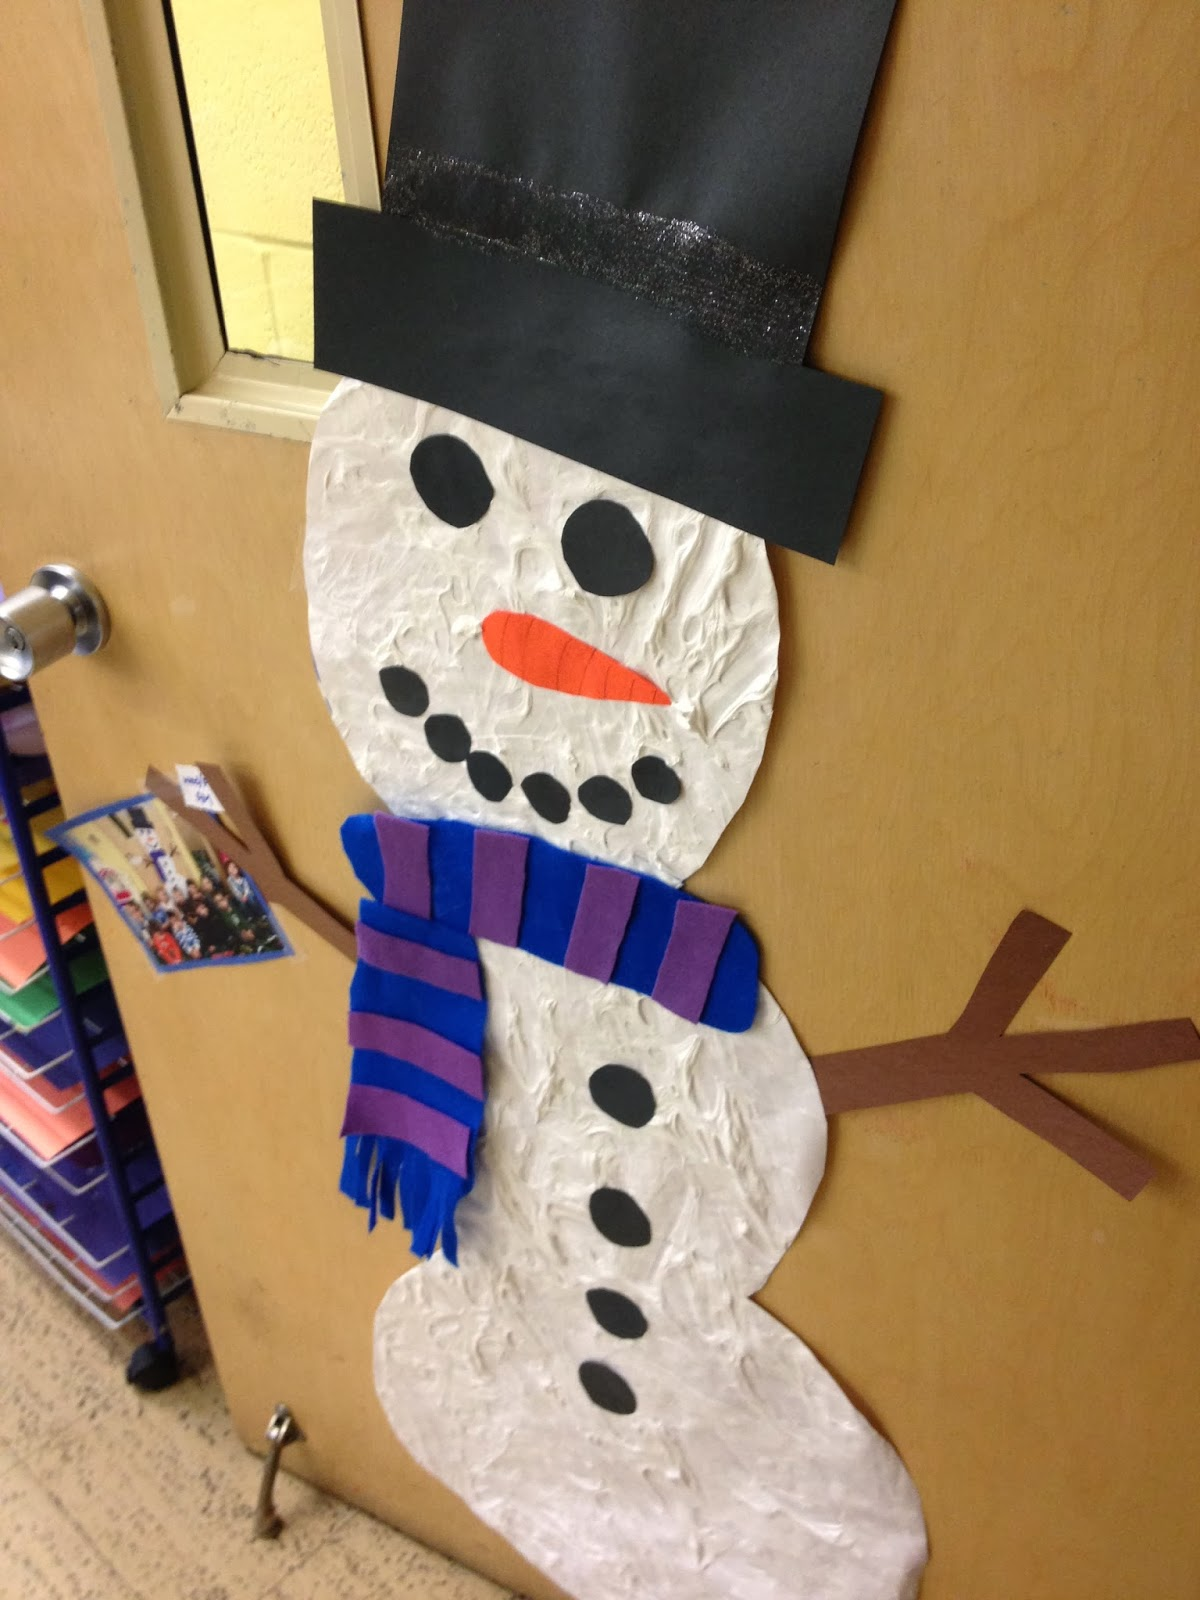 Terrific preschool years winter wonderland the paper plate snowman craft was one of the favorite among the little ones one of my co workers in the preschool did this craft with her little ones in jeuxipadfo Gallery